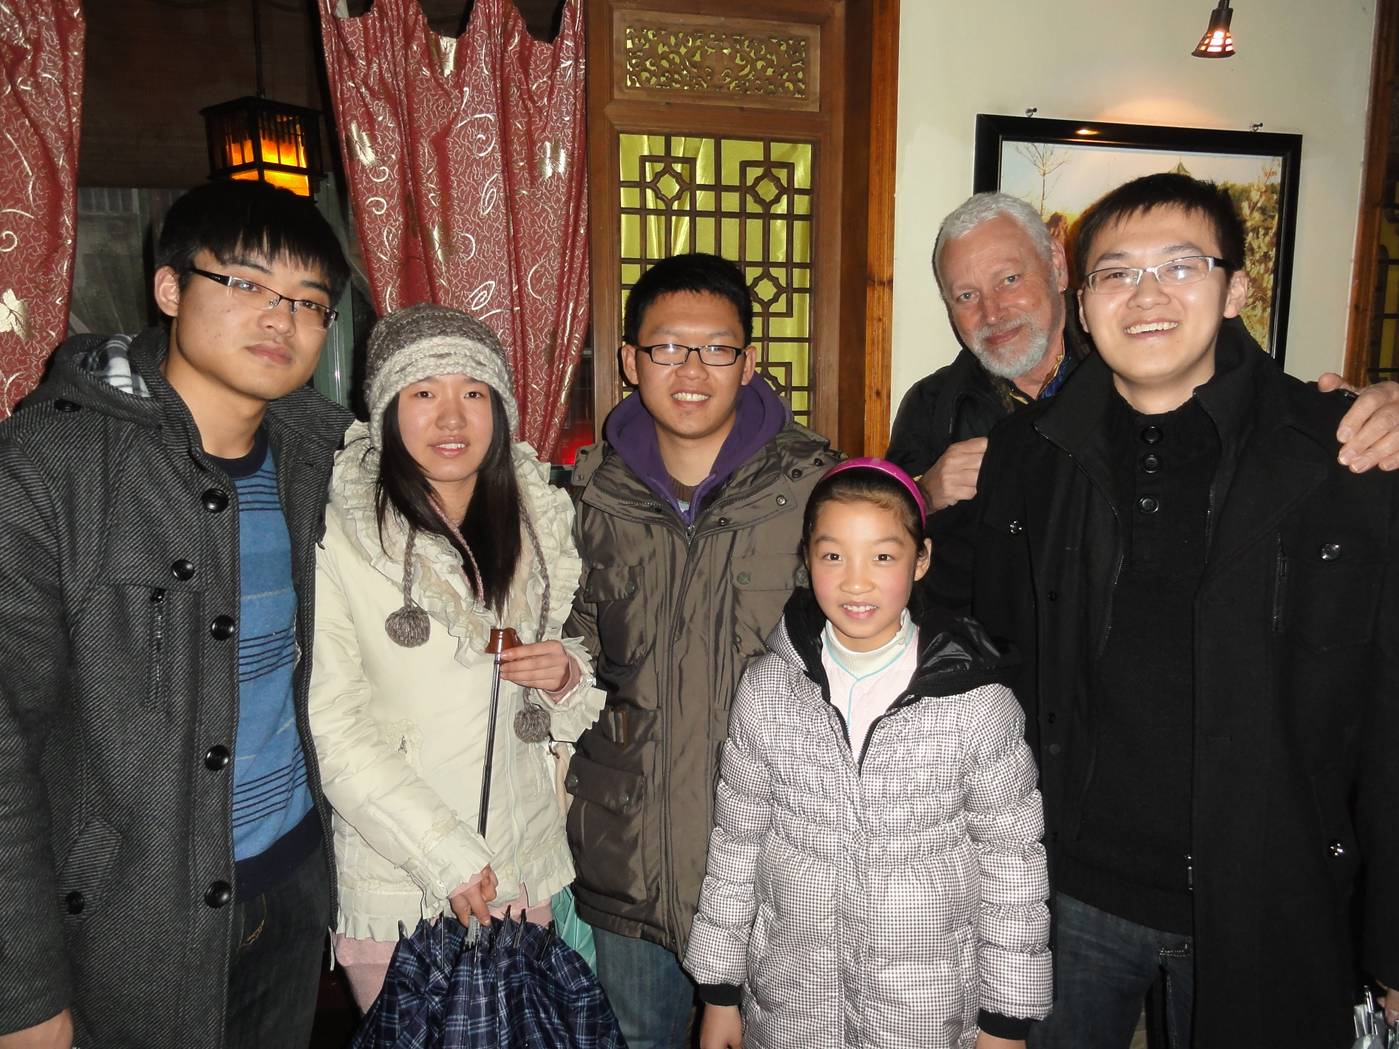 Picture:  Our friend George and his cousins in a tea house, Wuxi, China